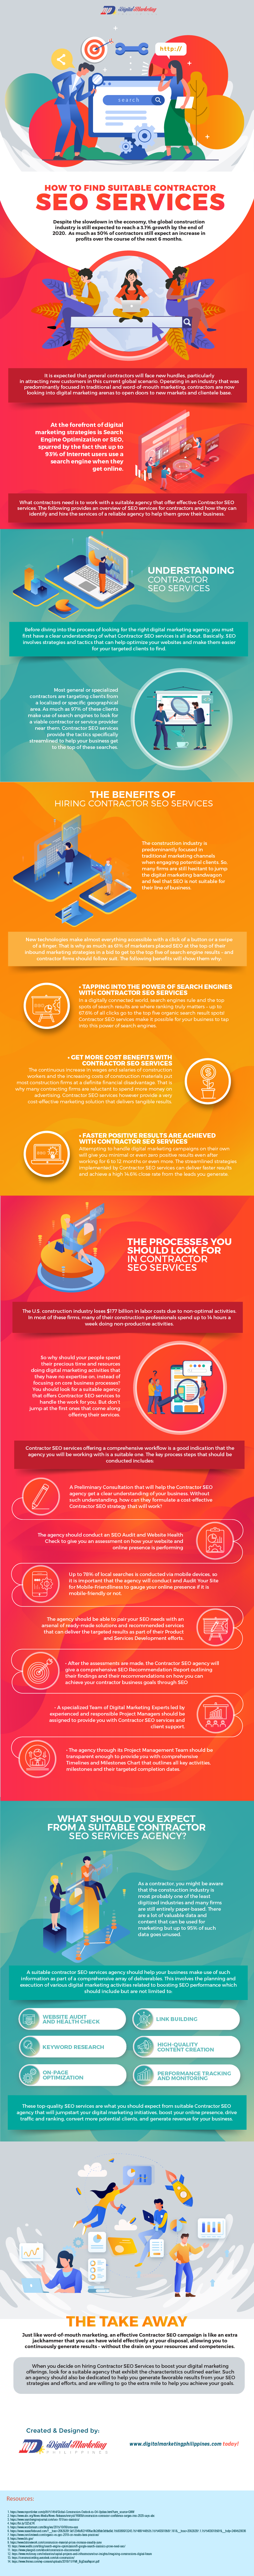 How to Find Suitable Contractor SEO Services [Infographic]